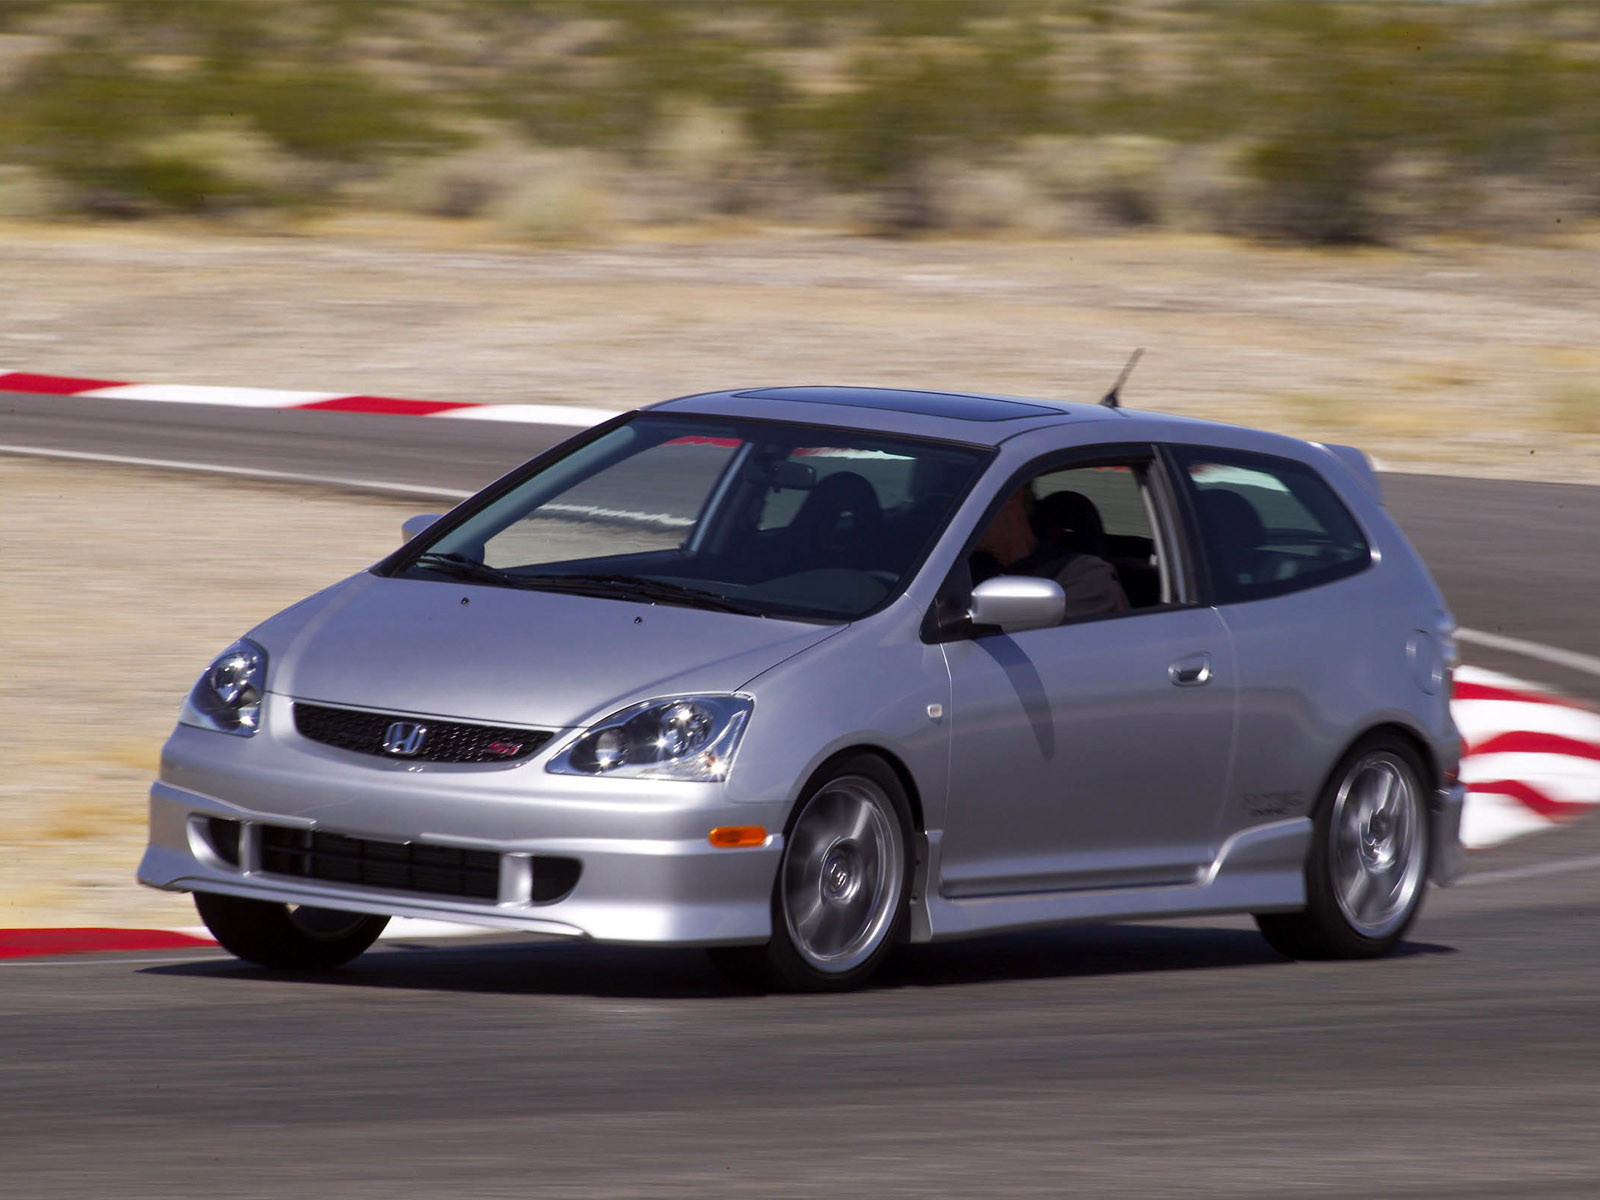 Cars Honda Civic Hatchback Vii 2002 #13